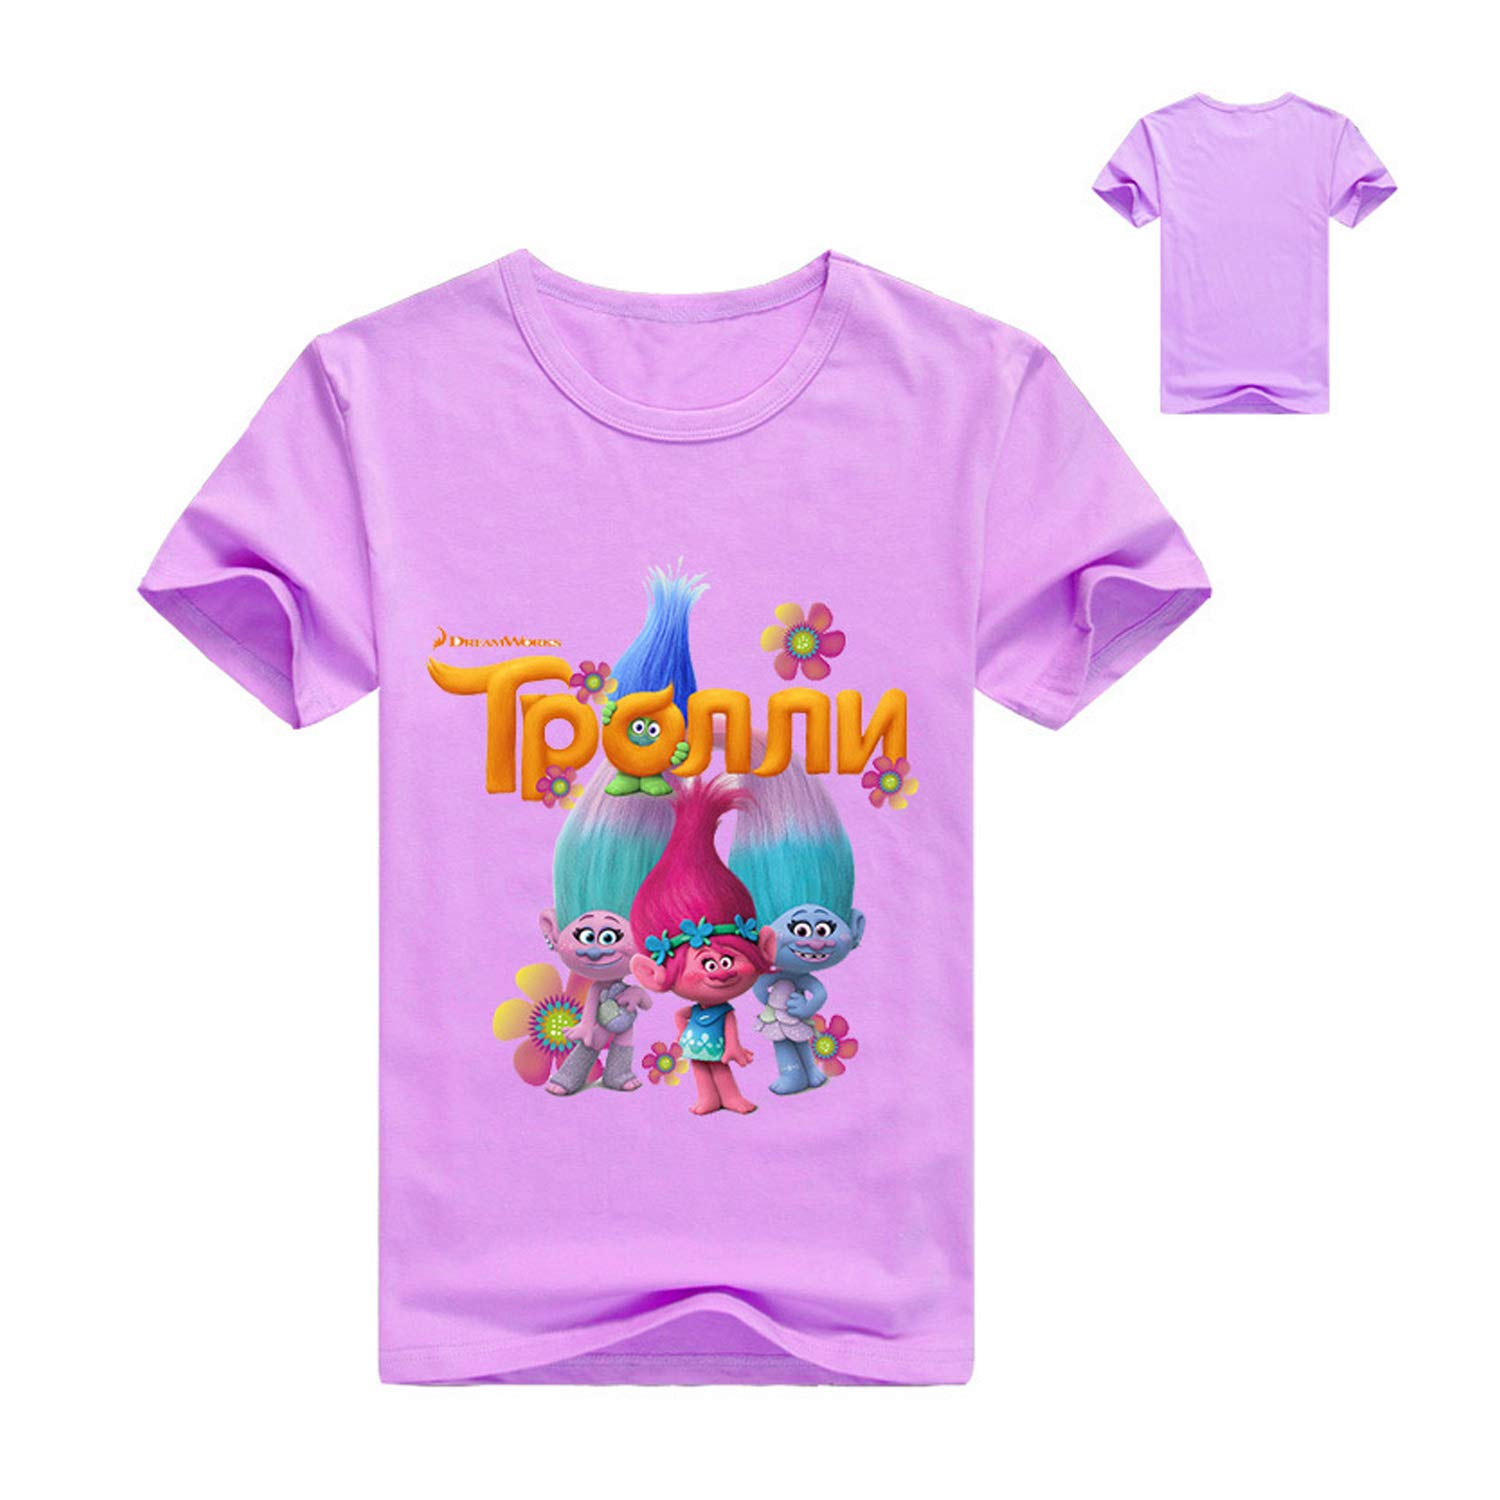 PCLOUD Childrens Trolls Printed Pure Color Leisure Short Sleeved T-Shirt